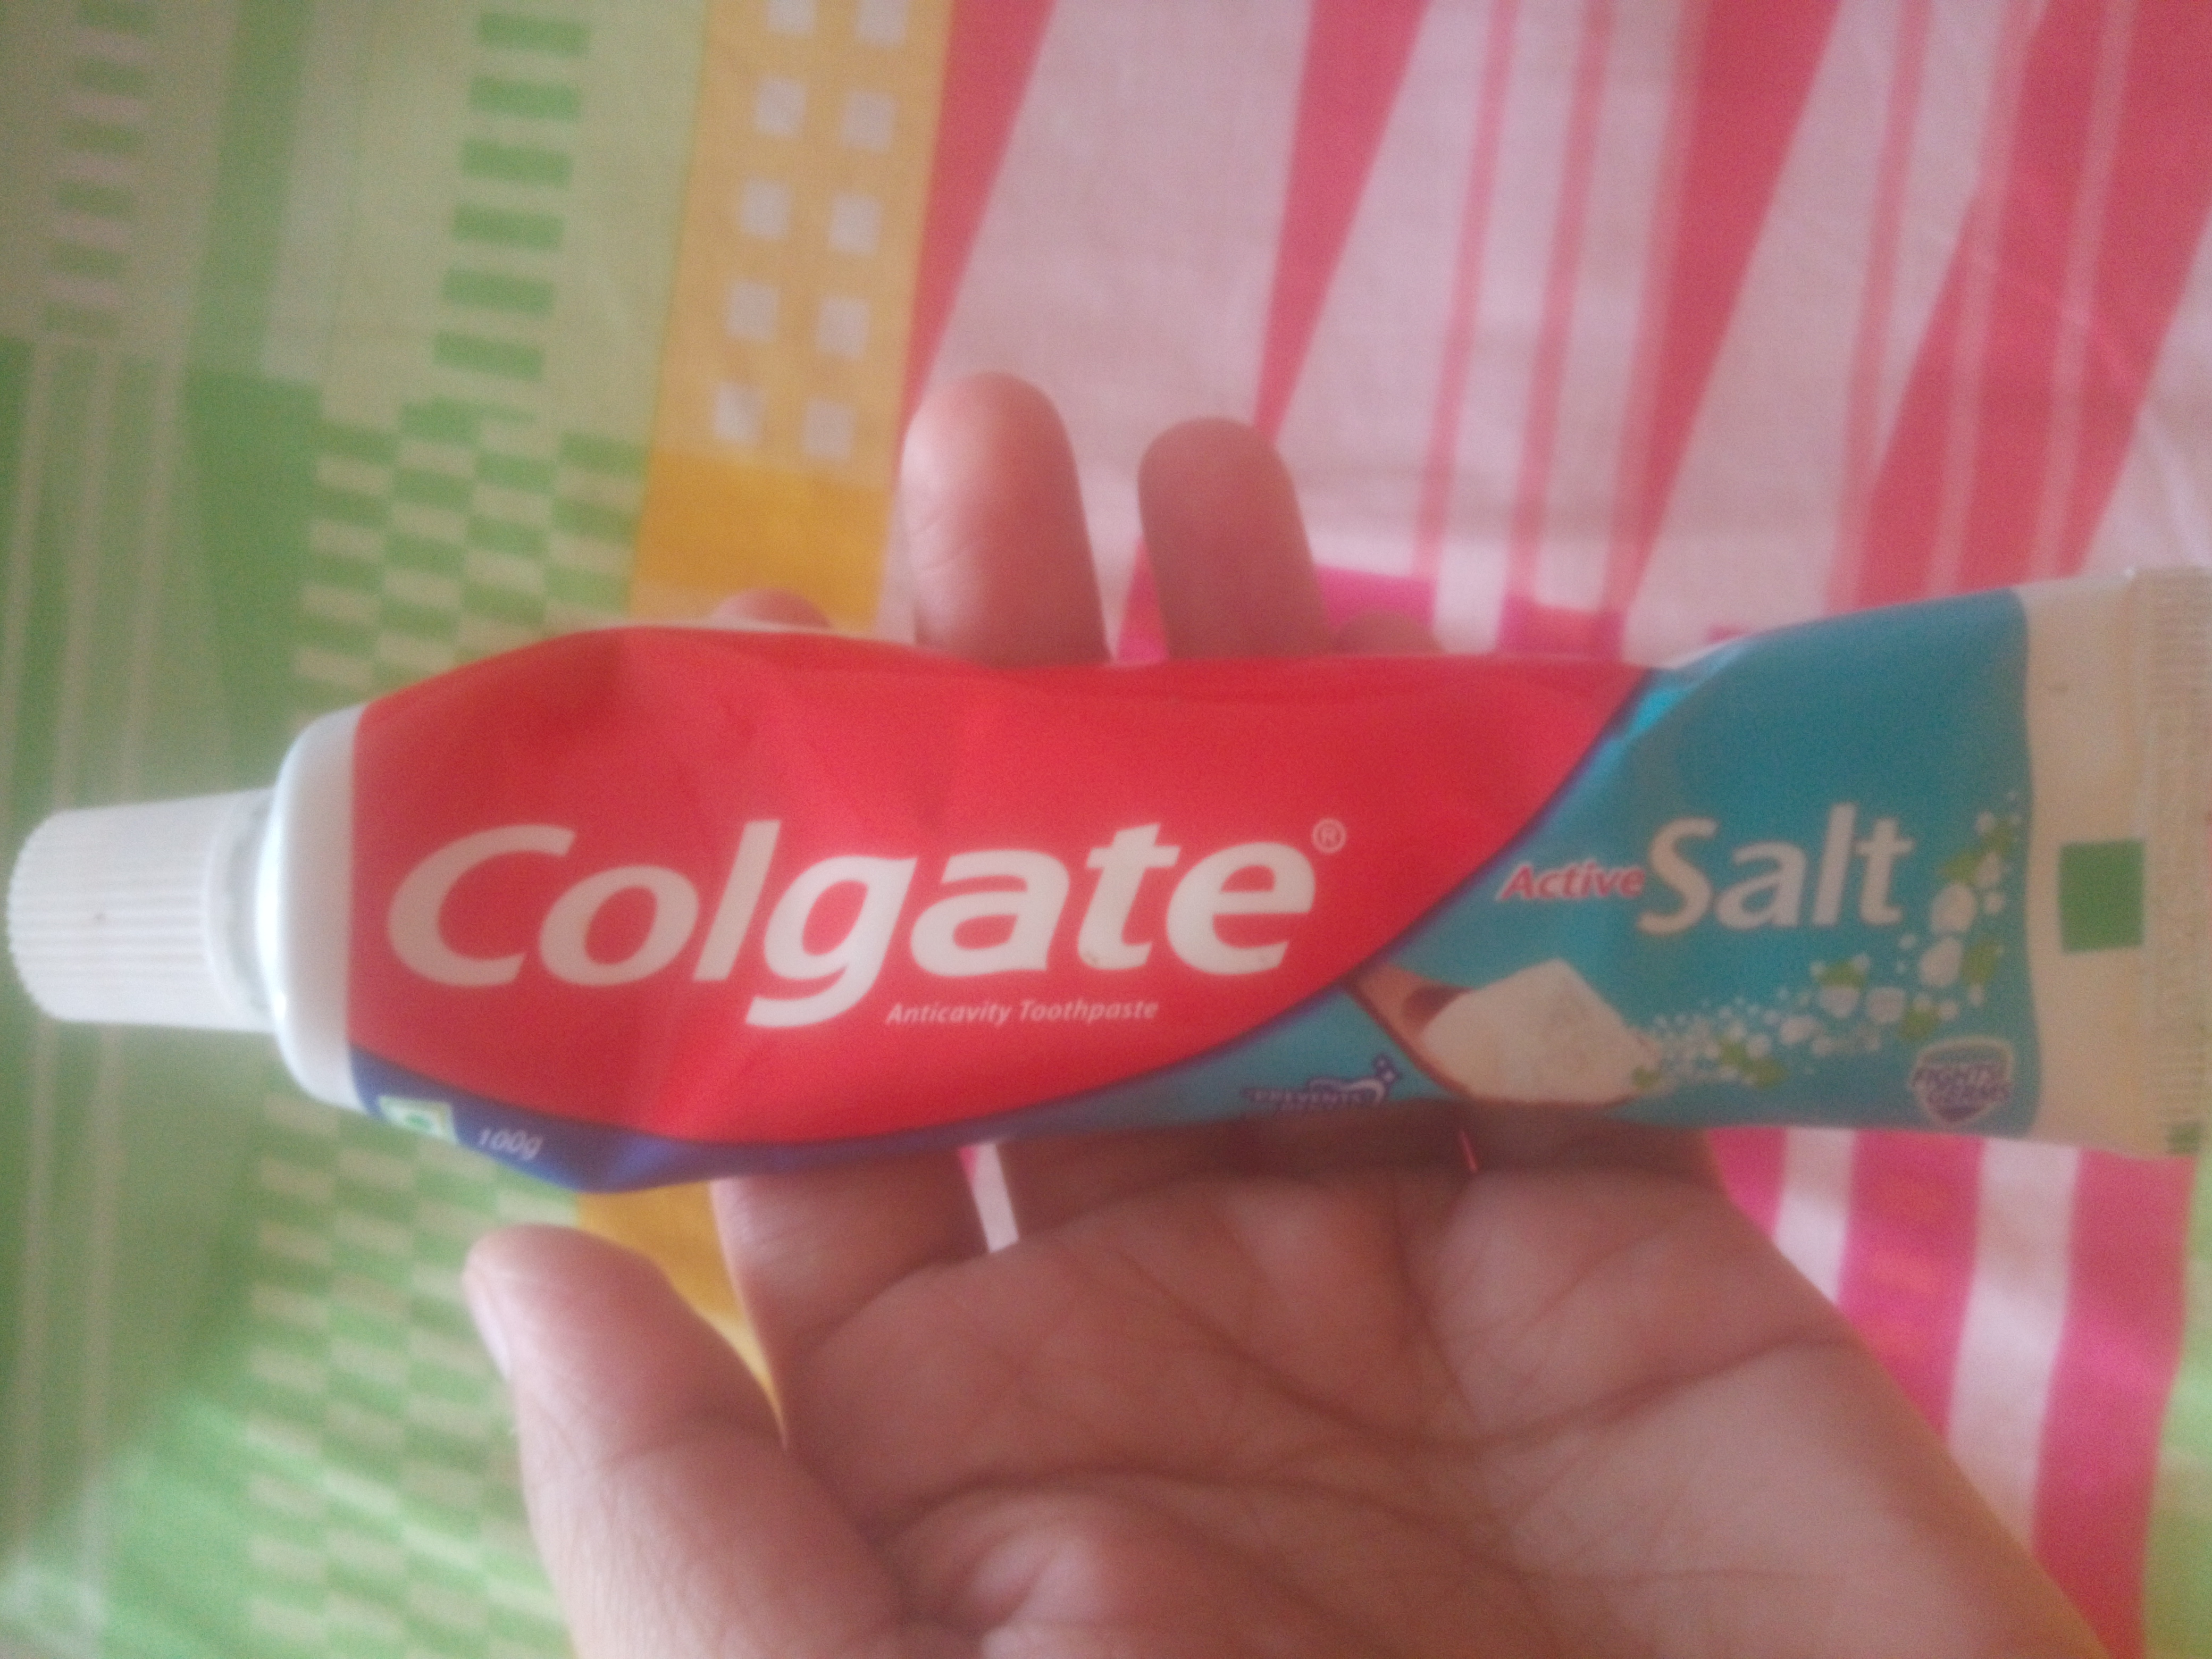 Colgate Active Salt Fight Germs Toothpaste-Salty taste-By pixie